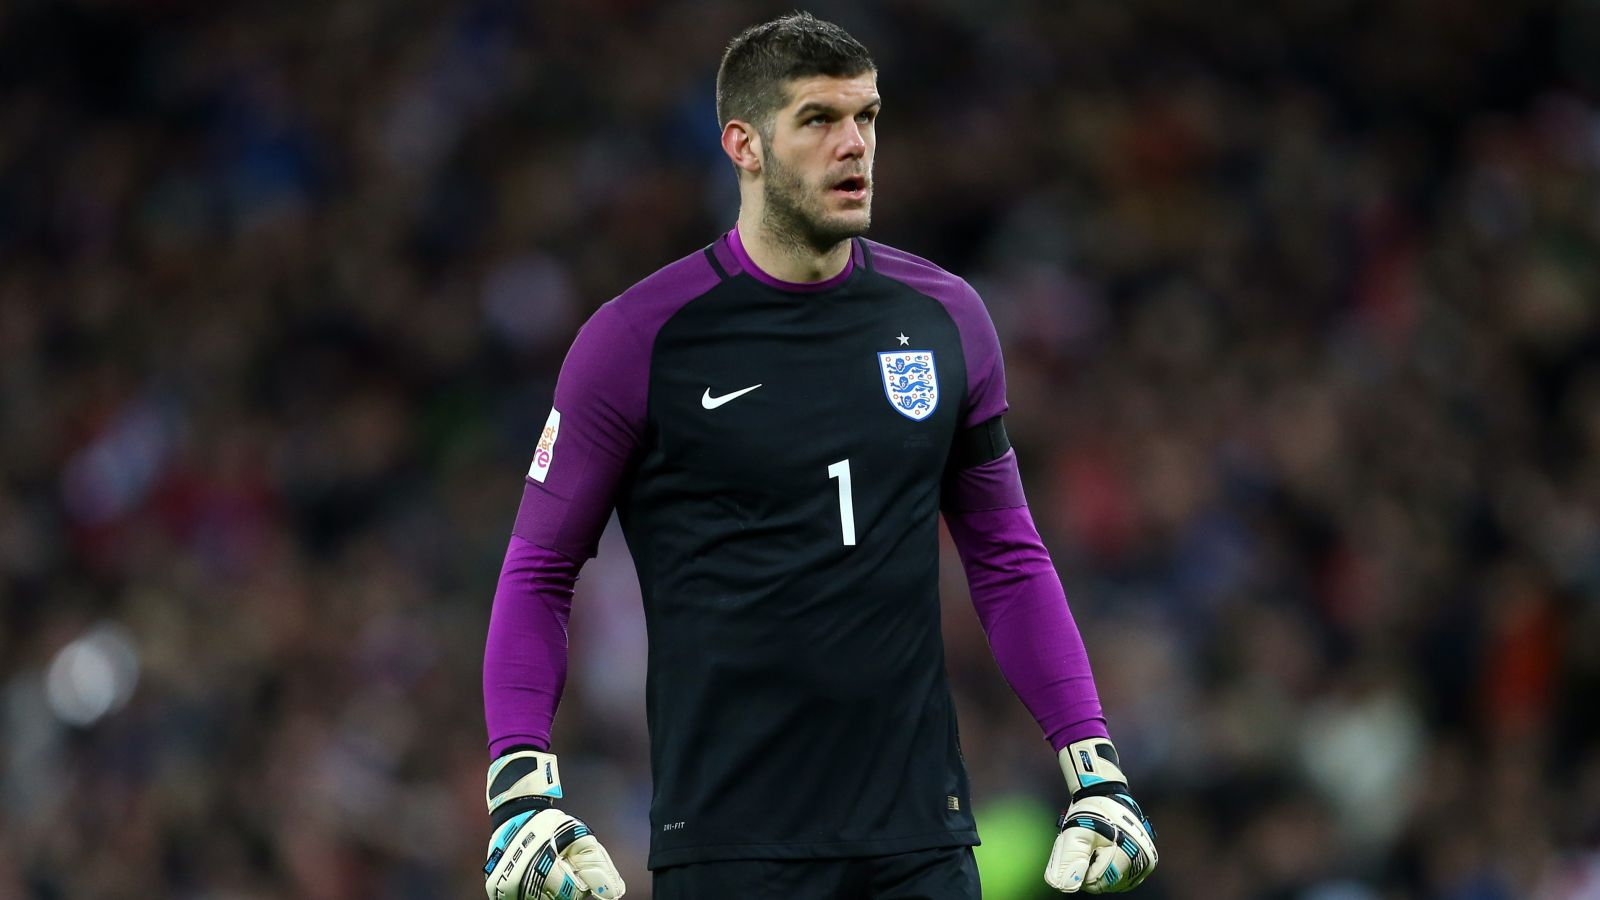 Chelsea to set their sights on Forster if Courtois leaves